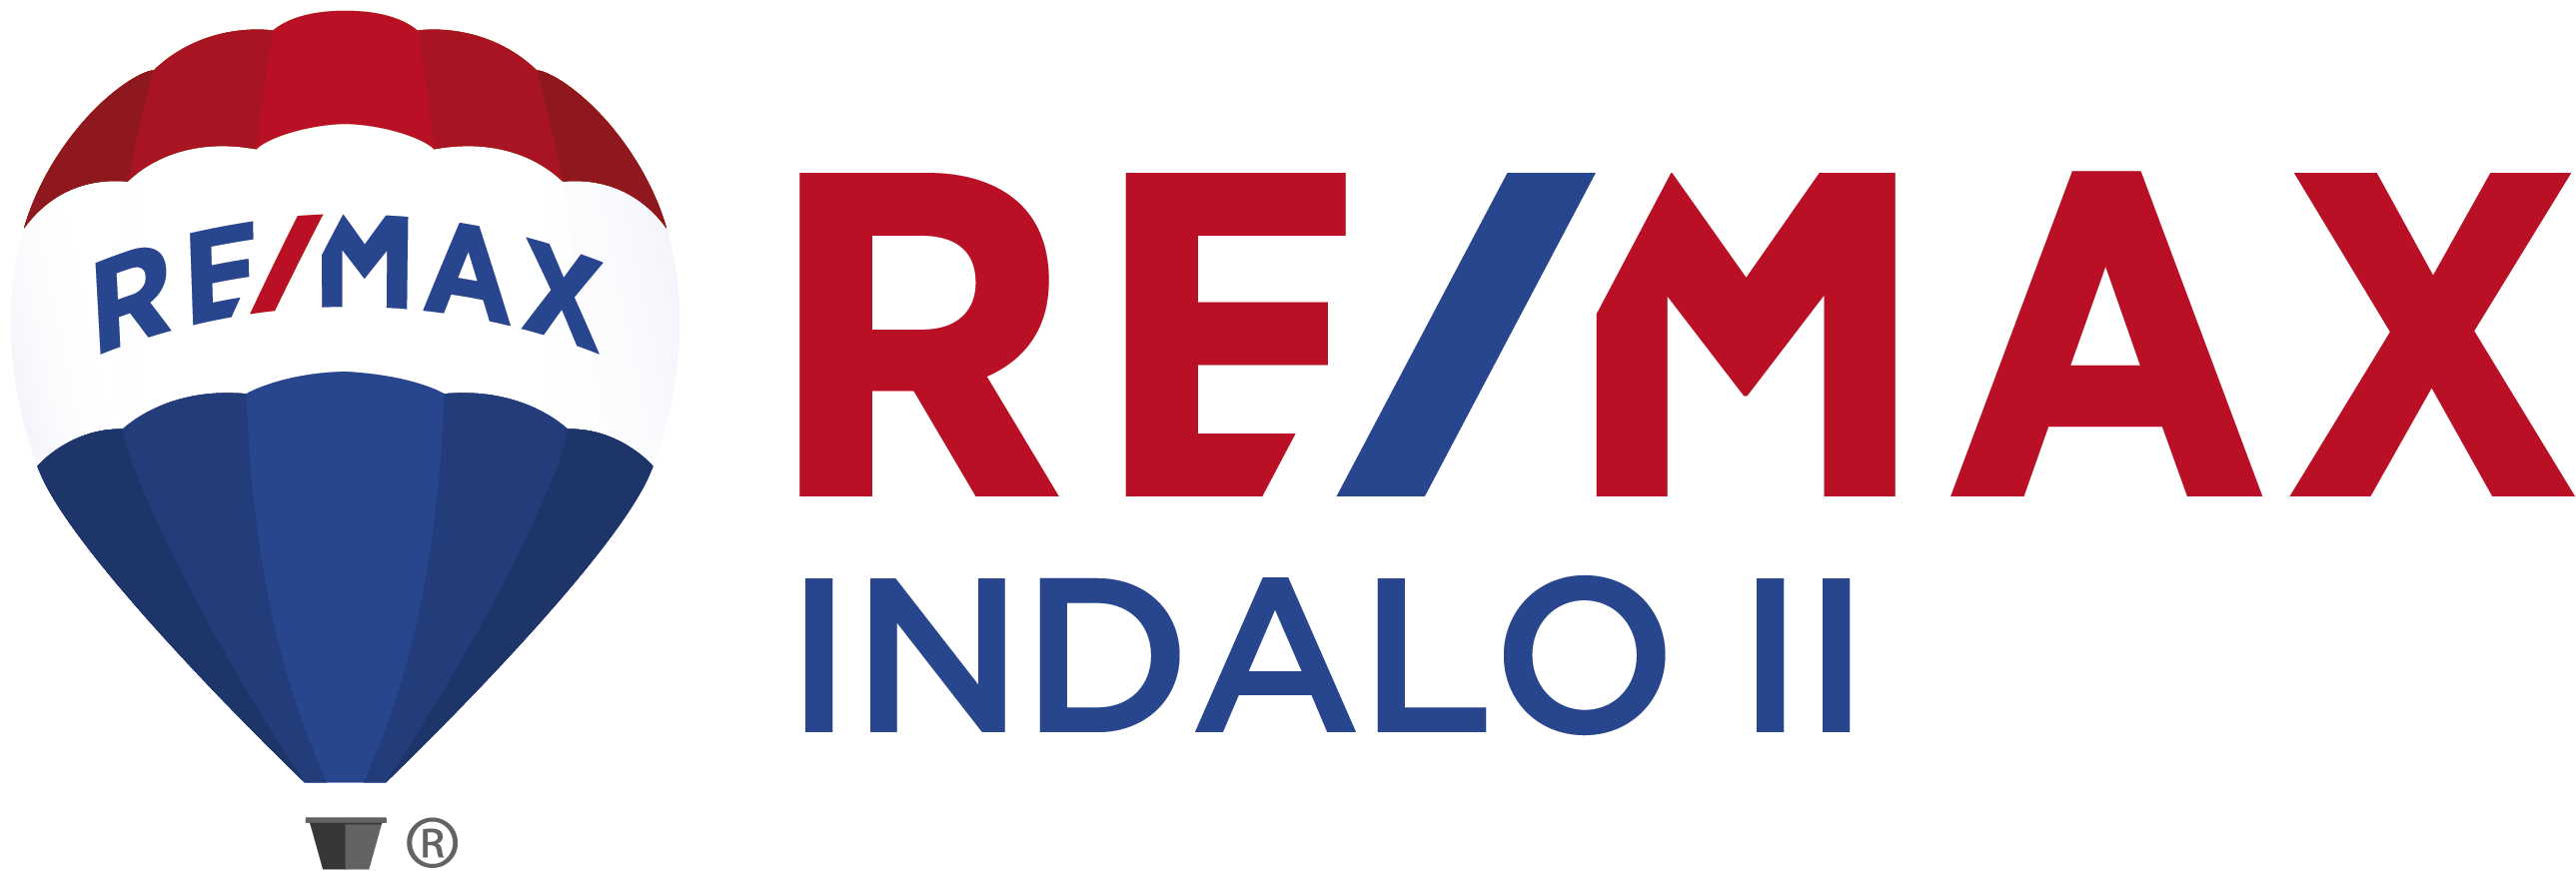 RE/MAX Indalo II